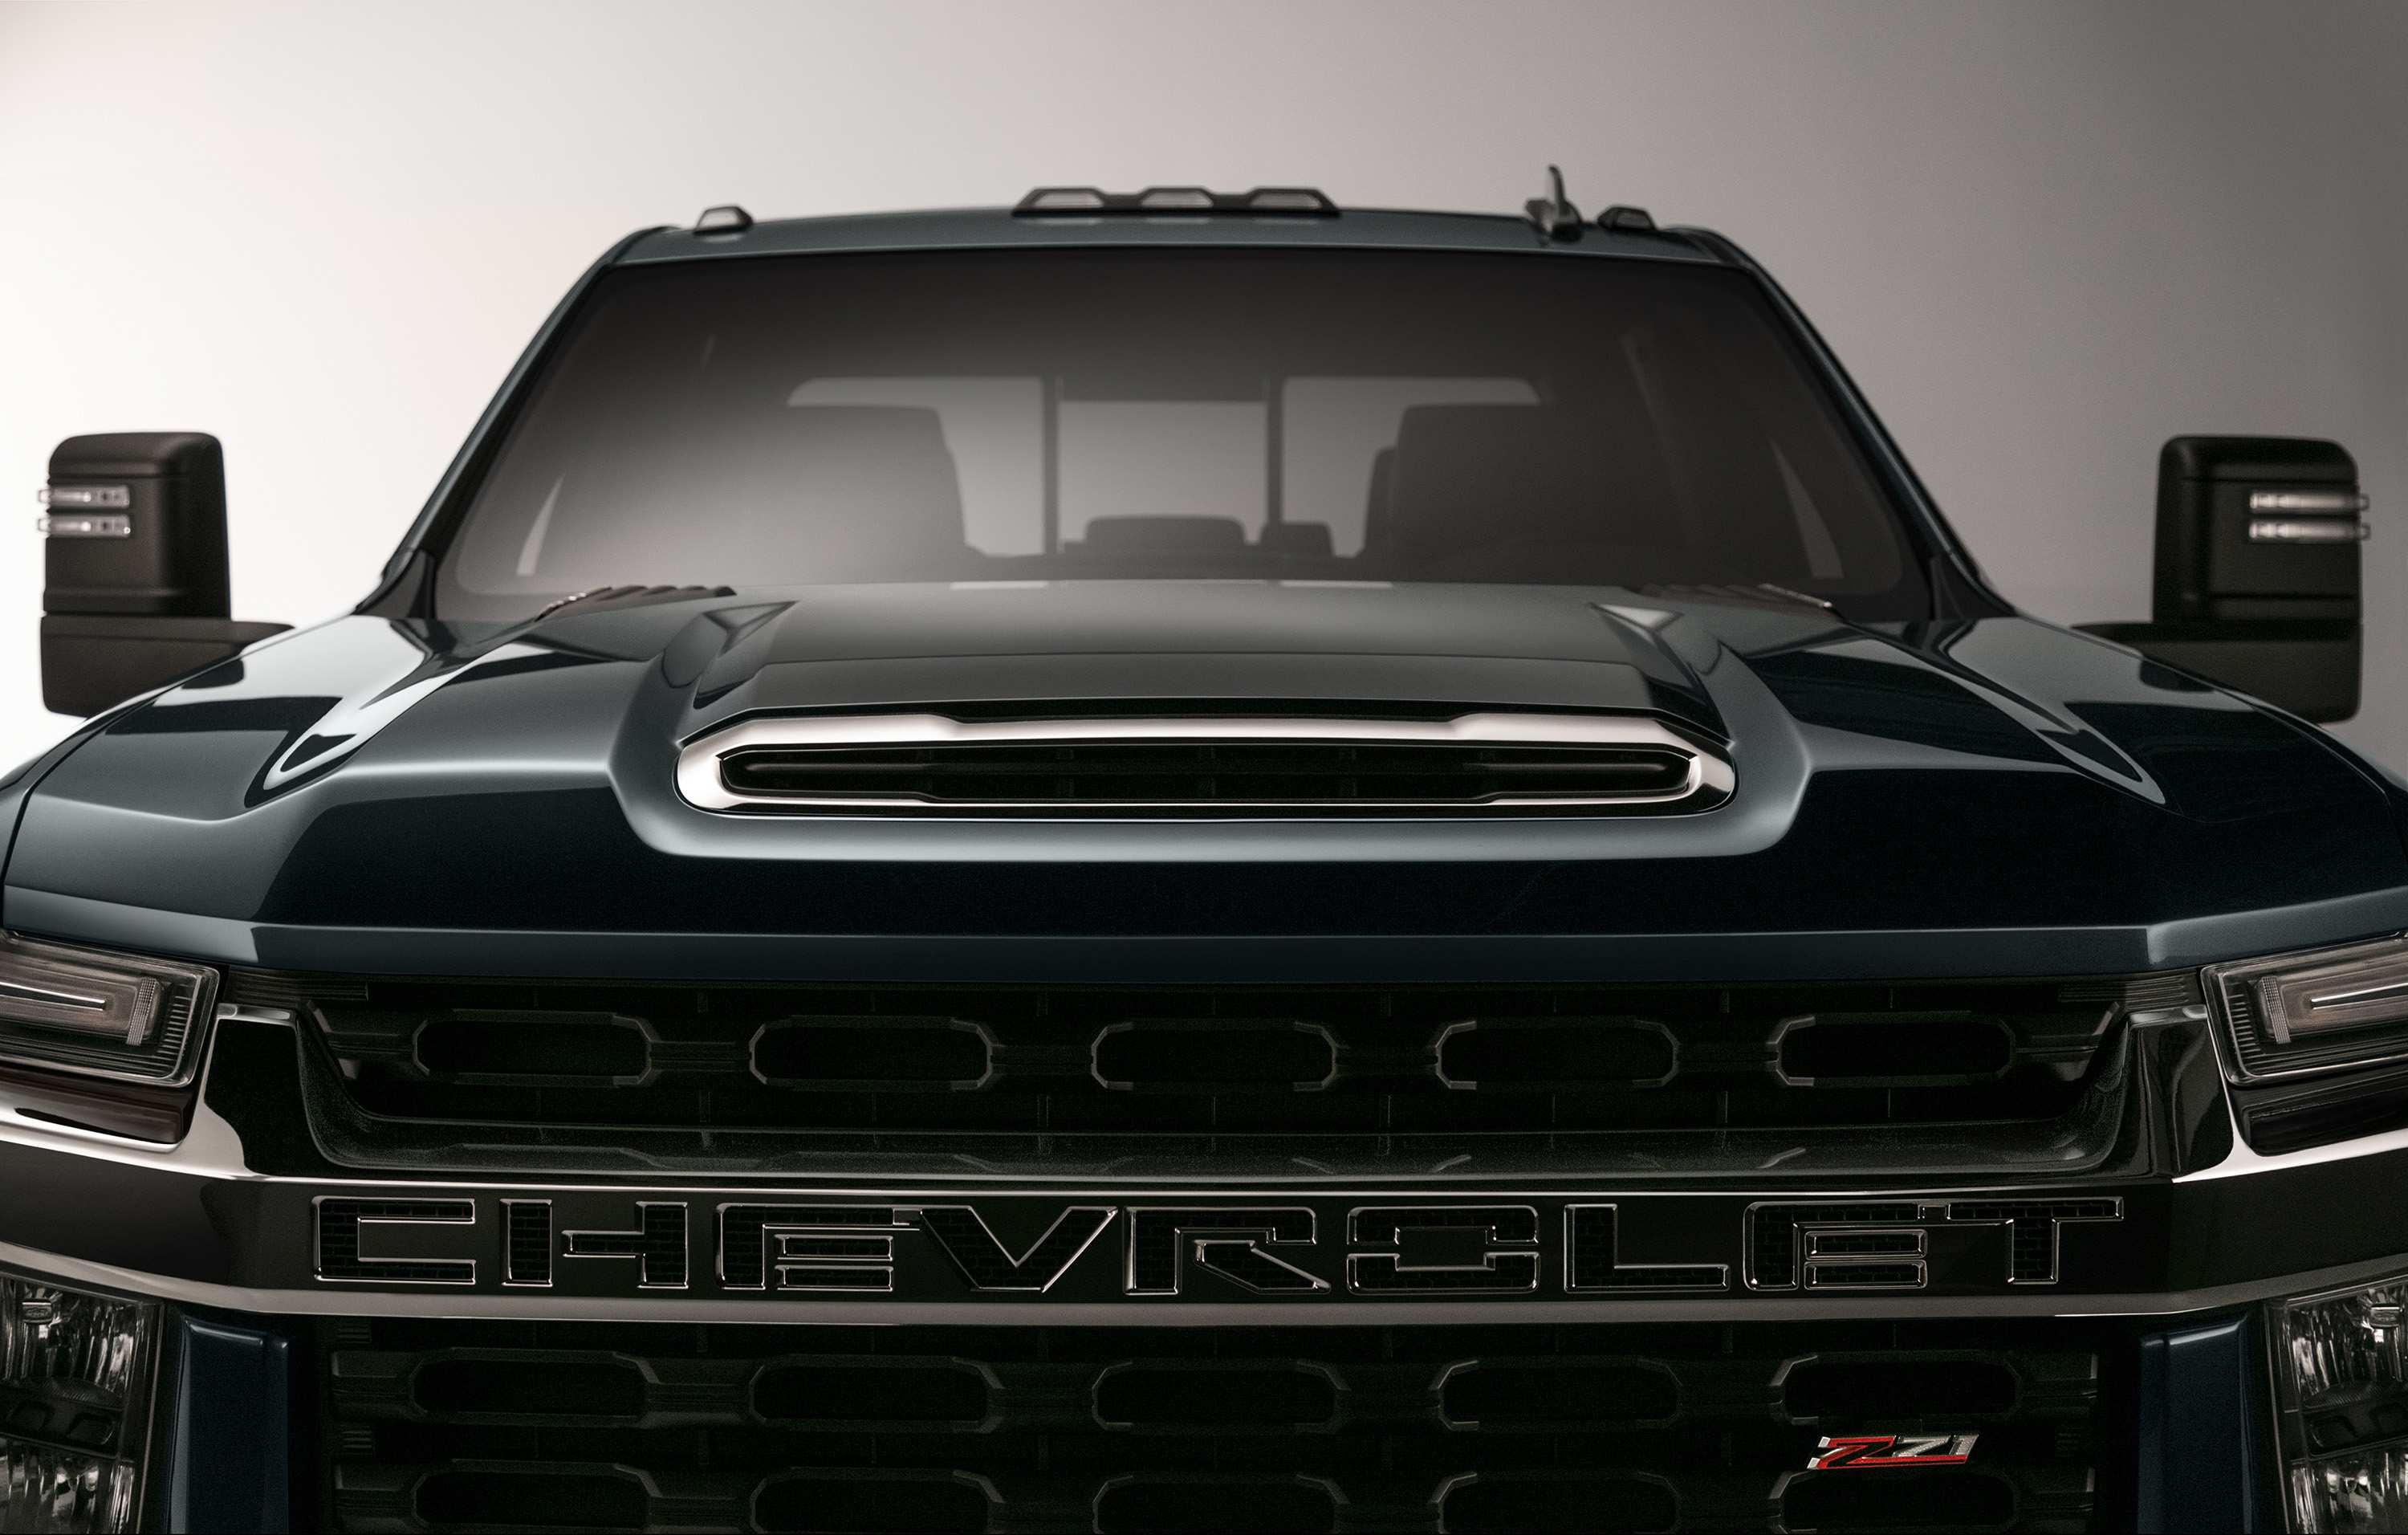 98 The Best 2020 Chevy Silverado Release Date